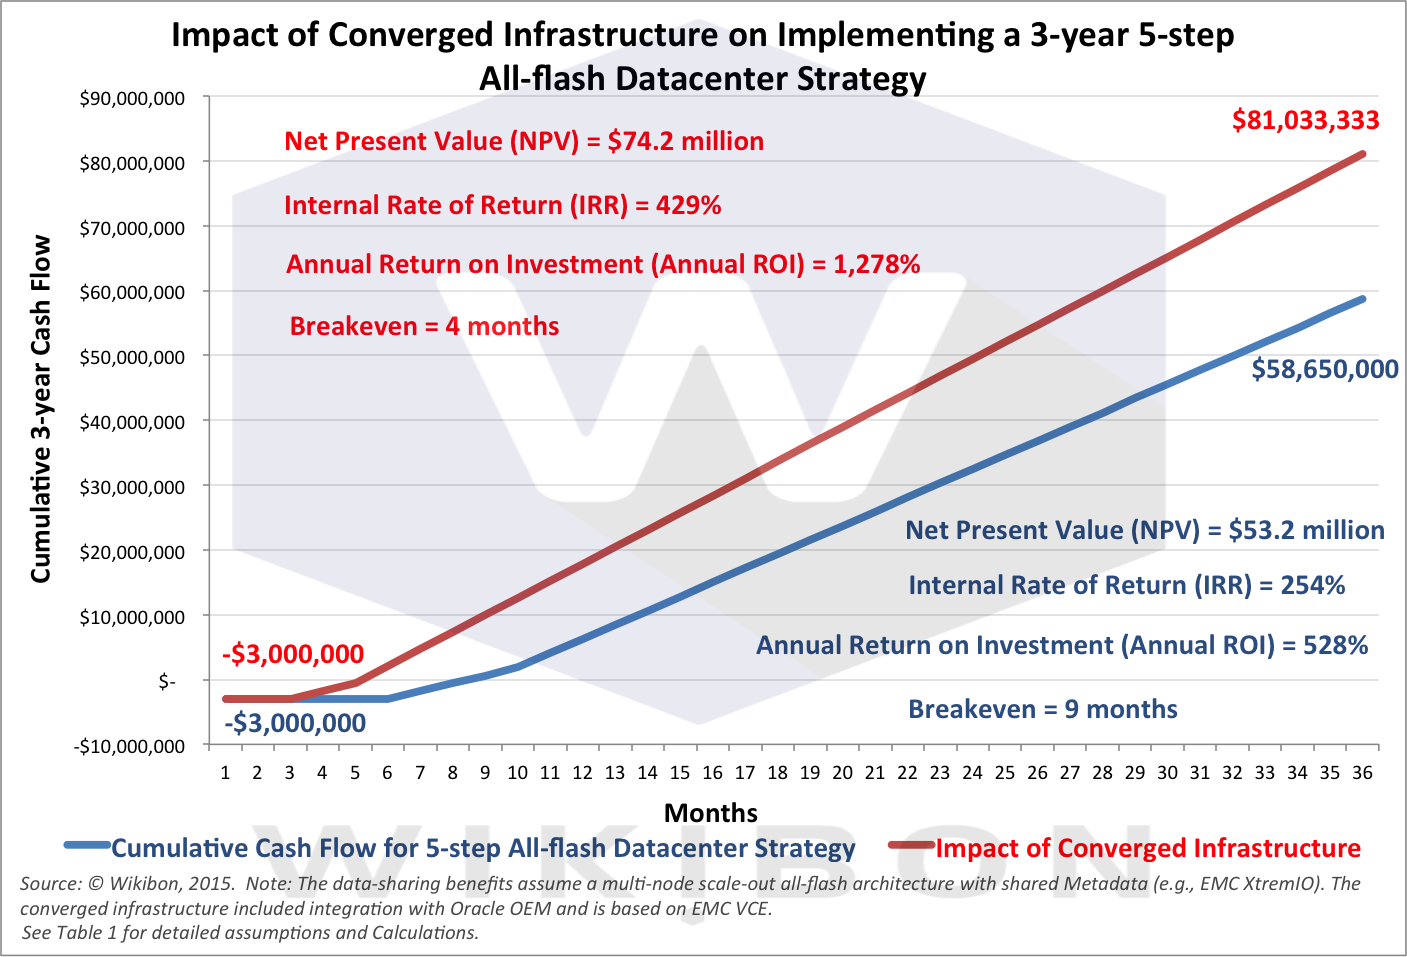 Figure 2: Impact of Converged Infrastructure on Cash Flow and Financial Metrics for a 5-step All-flash Strategy ProjectSource: © Wikibon 2015